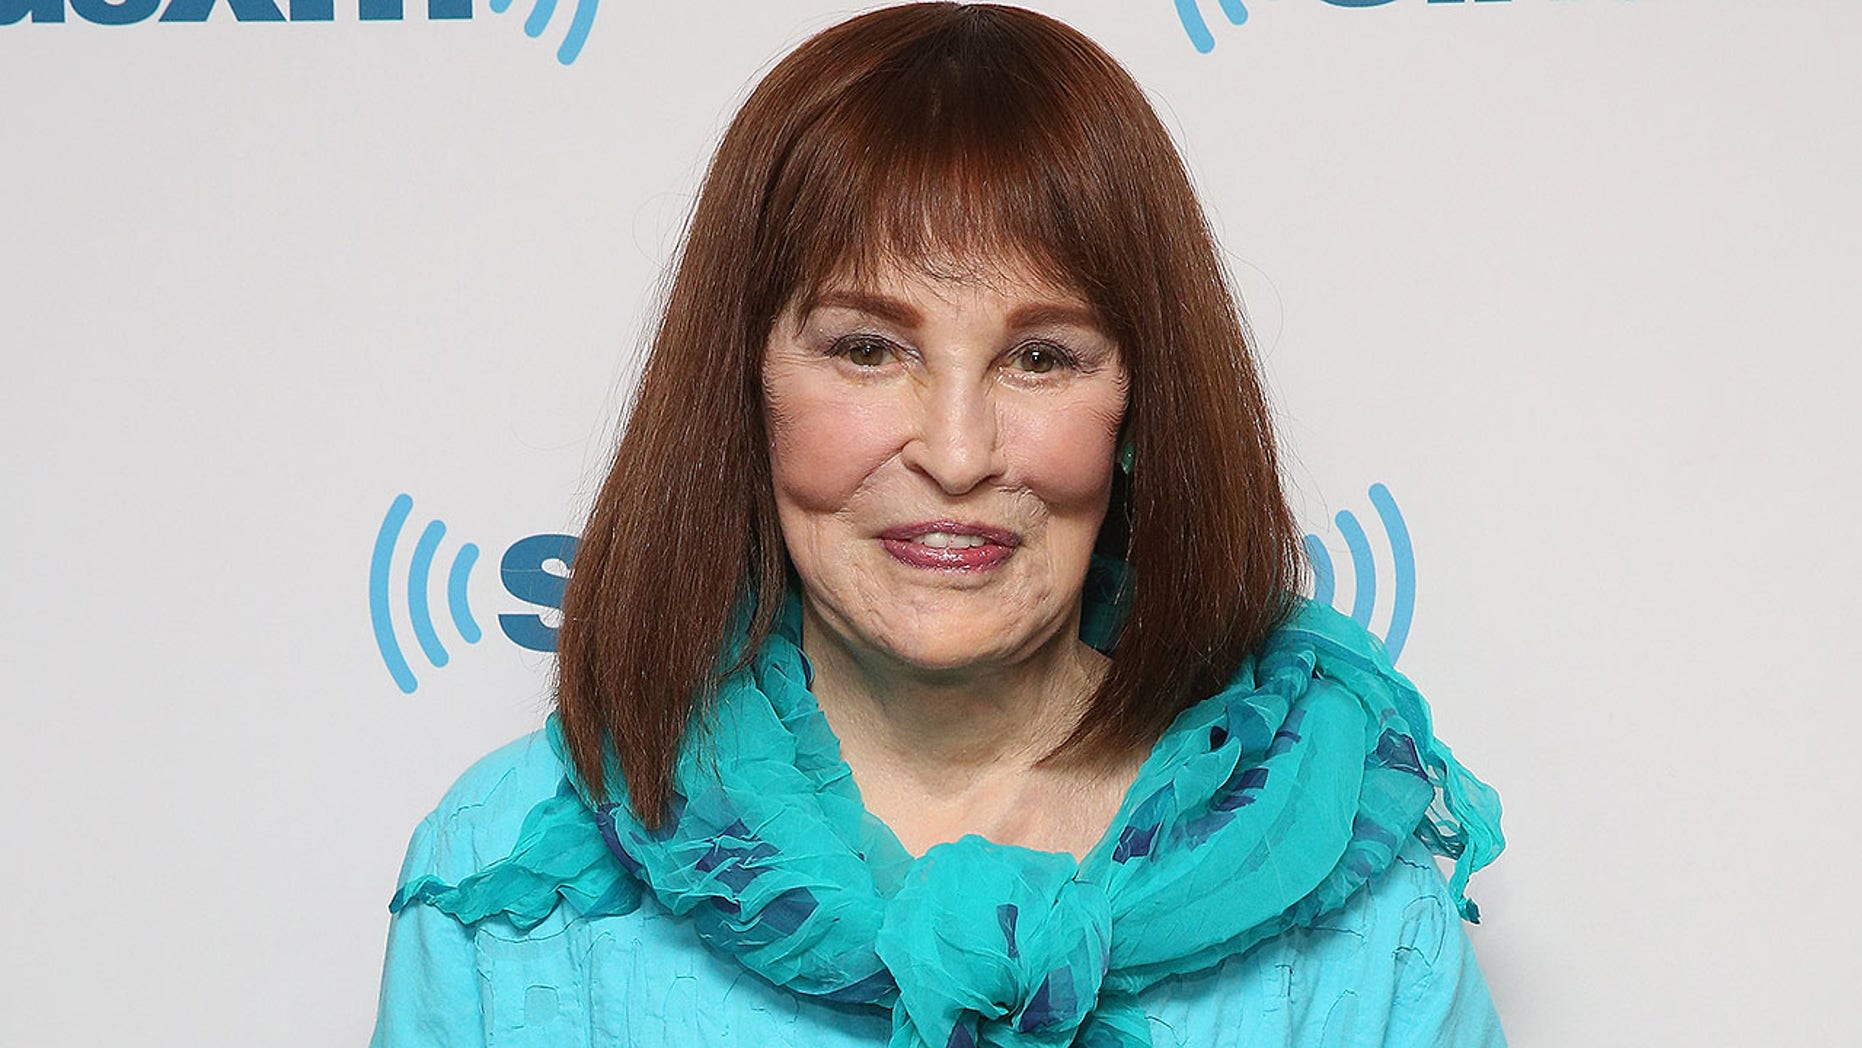 Gloria Vanderbilt died, her son Anderson Cooper revealed. The heir, the socialite, the model and the fashion designer were 95.